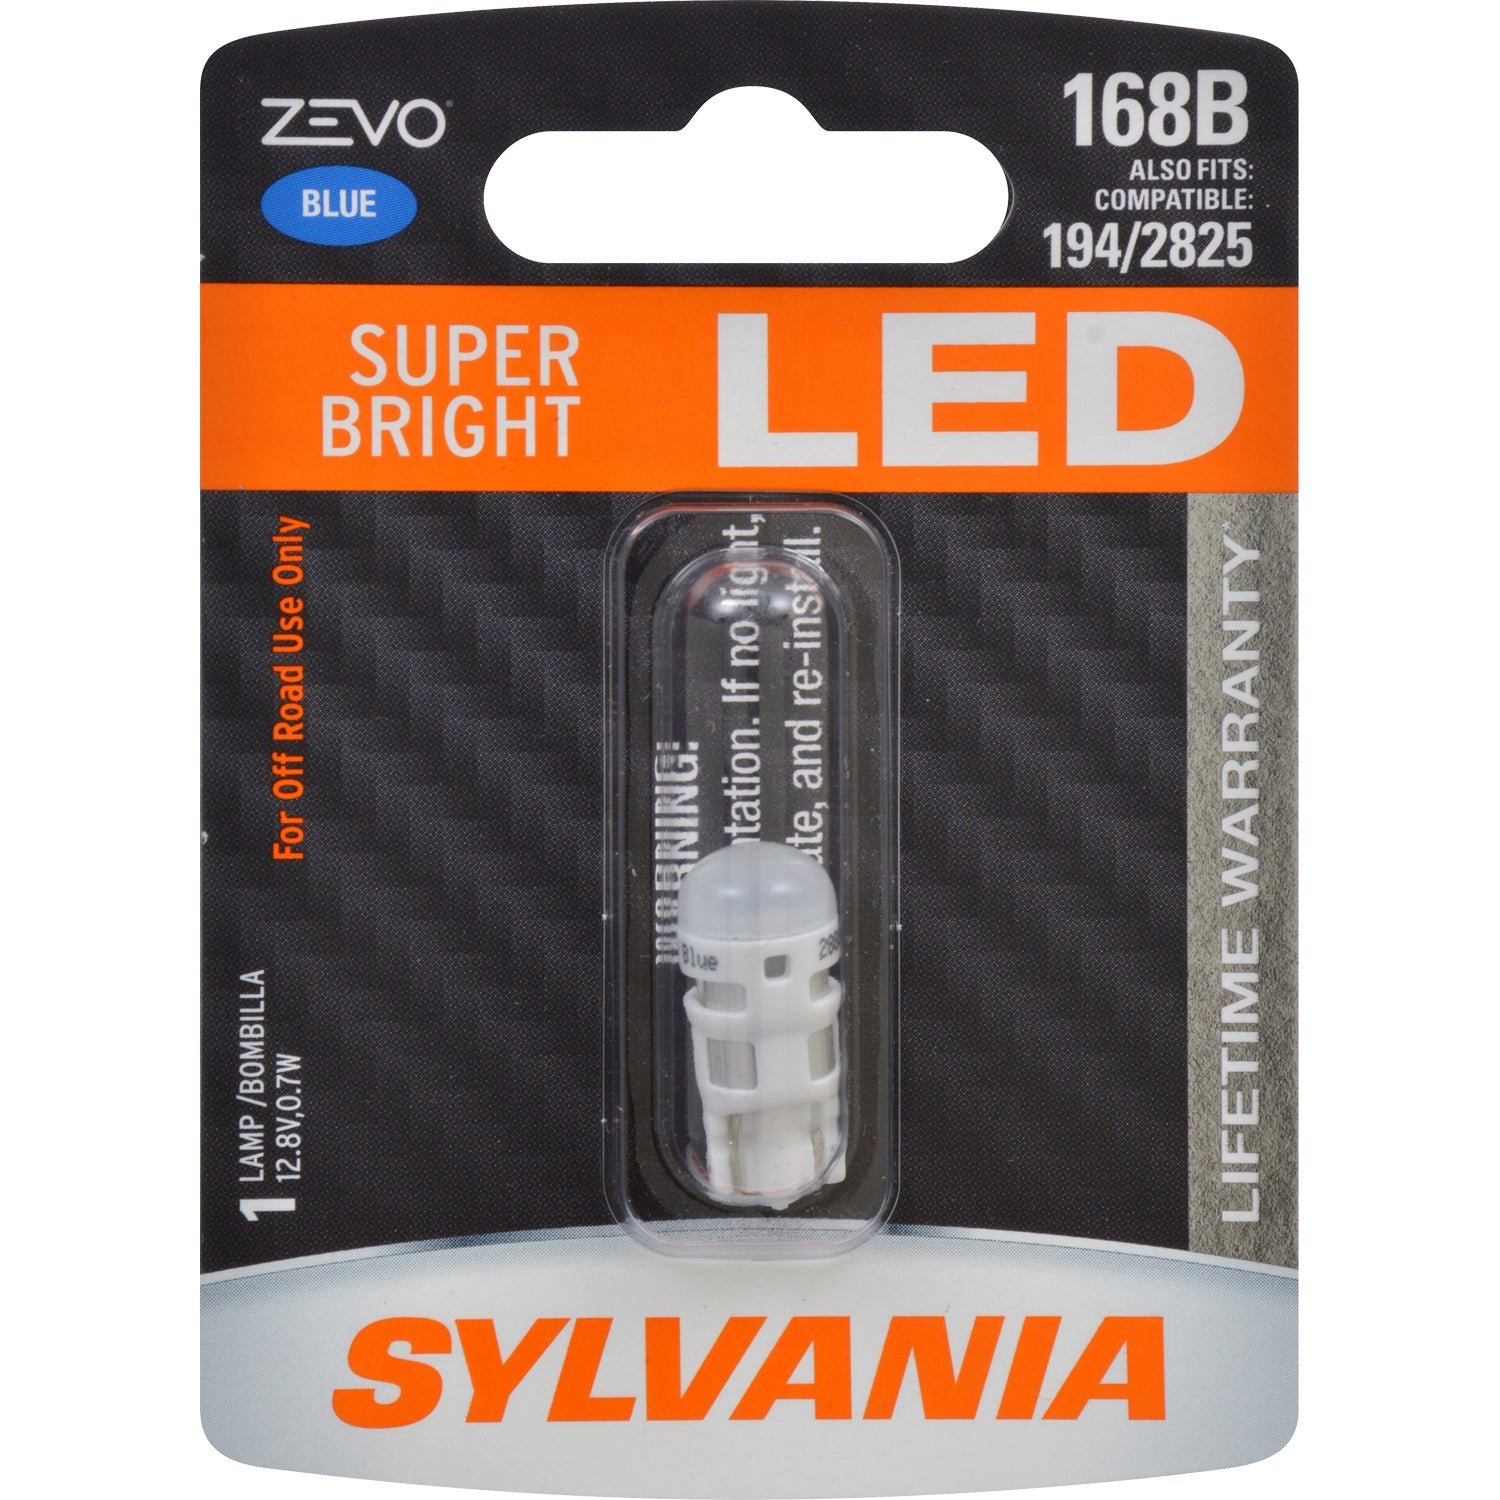 SYLVANIA ZEVO 168 T10 W5W Blue LED Automotive Bulb